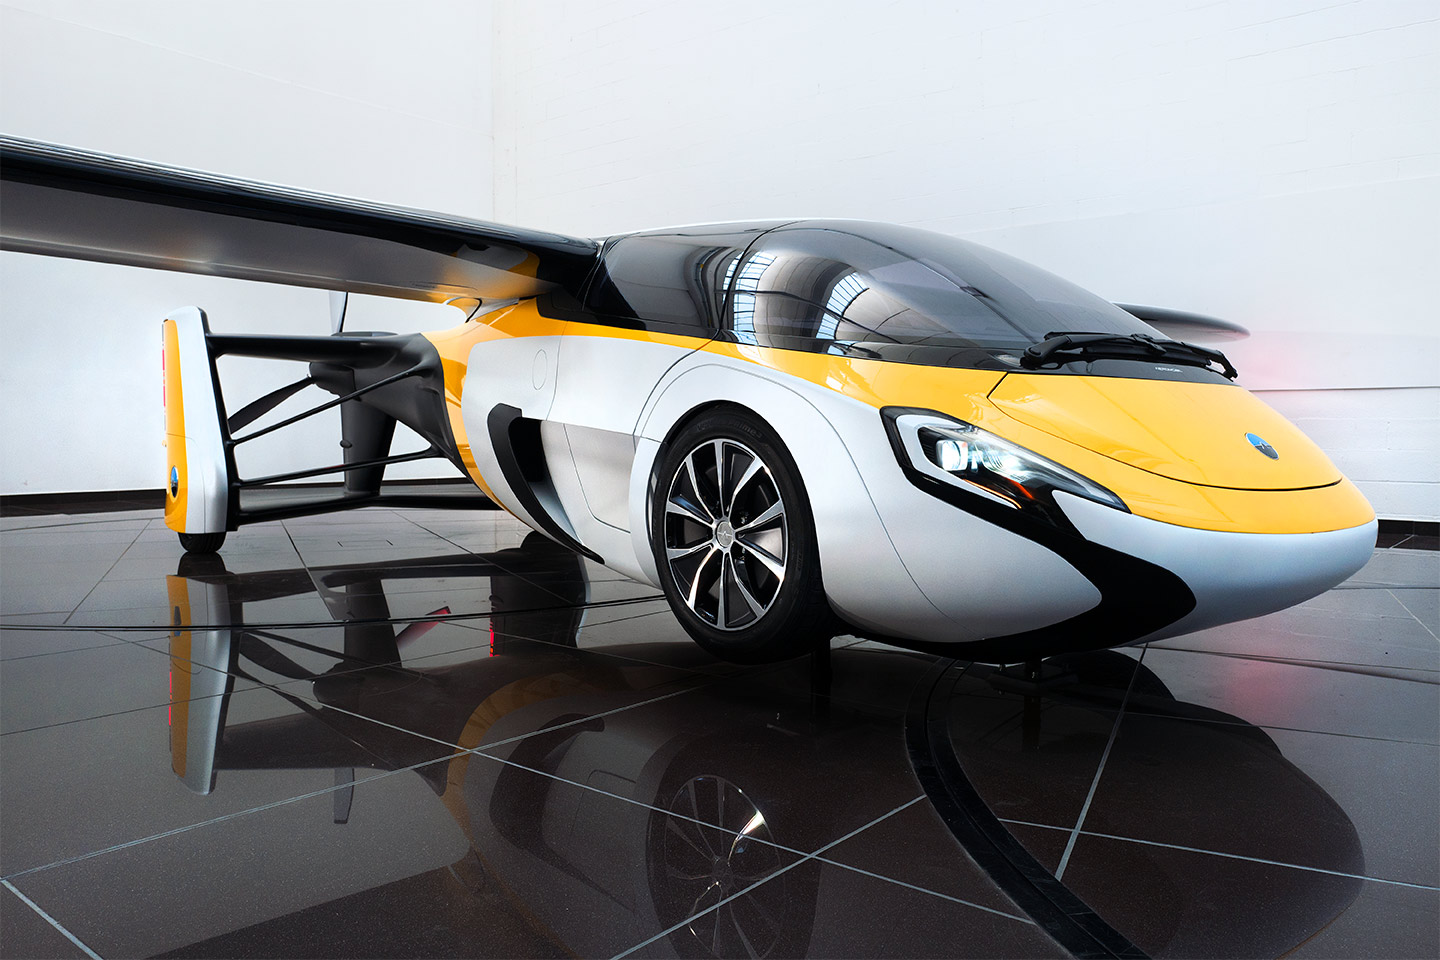 Aeromobil S Innovative Flying Car Will Swerve Above